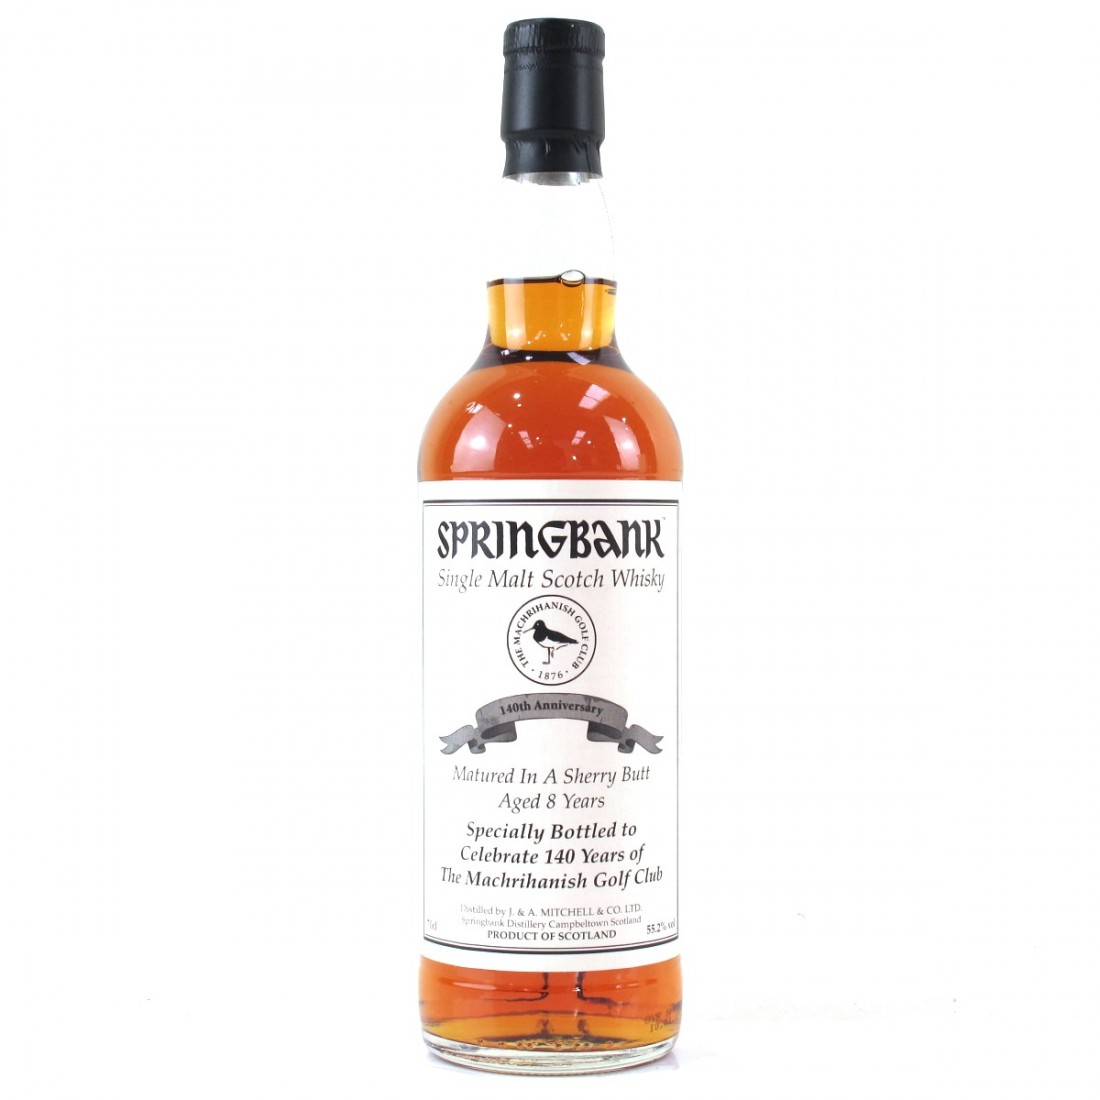 Springbank 8 Year Old Private Bottling / The Machrihanish Golf Club 140th Anniversary